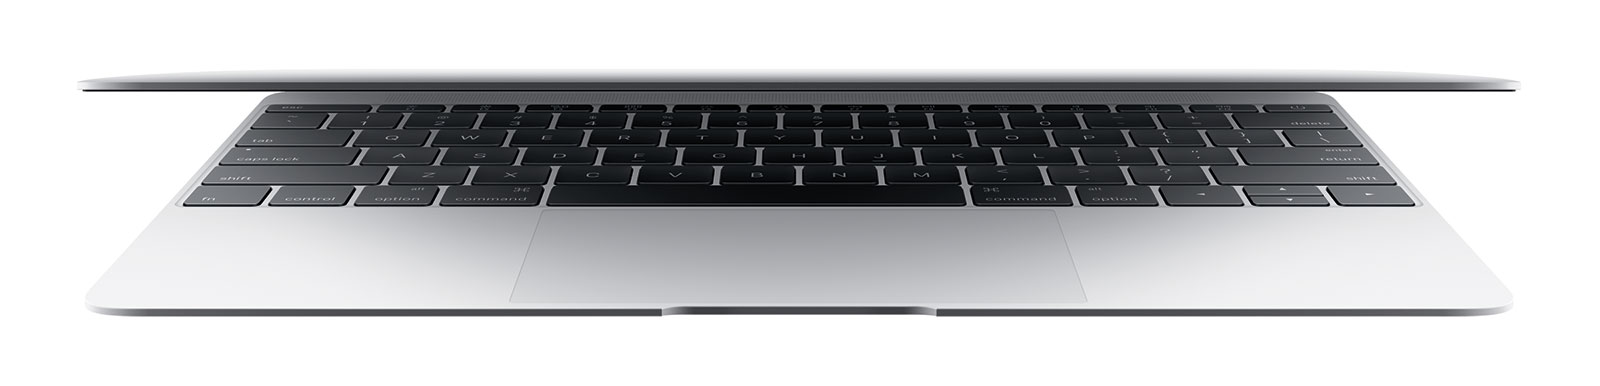 The success of Apple's MacBook could determine the future of the MacBook Pro.